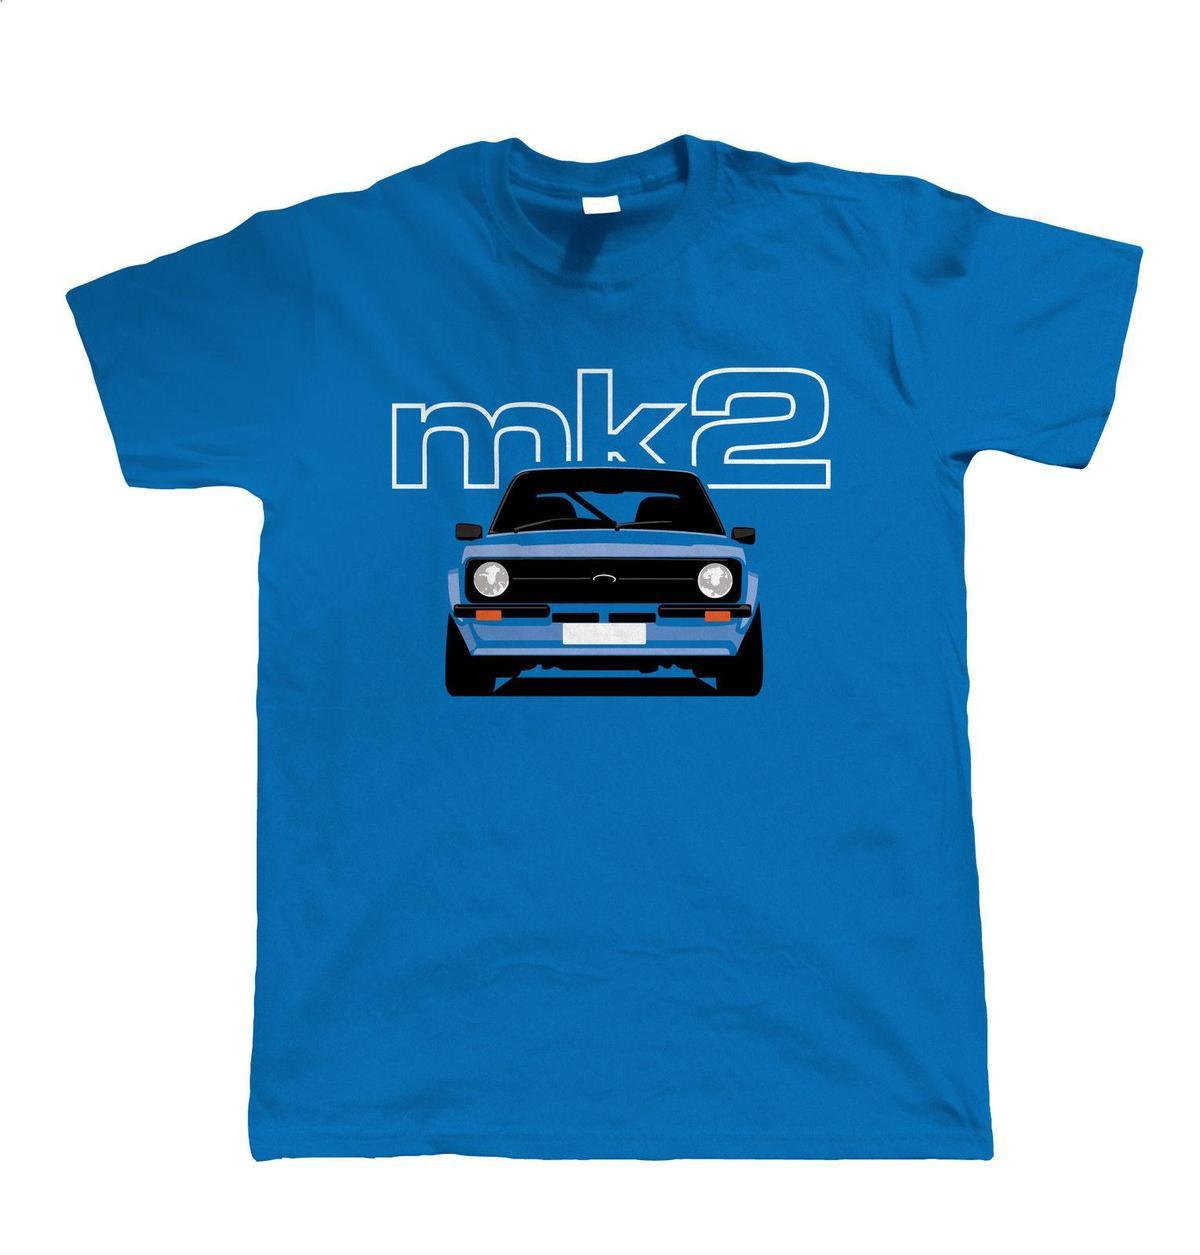 Mk2 Escort T Shirt Gift For Dad Him Birthday Tees Cool Shirts From Yuxin06 138